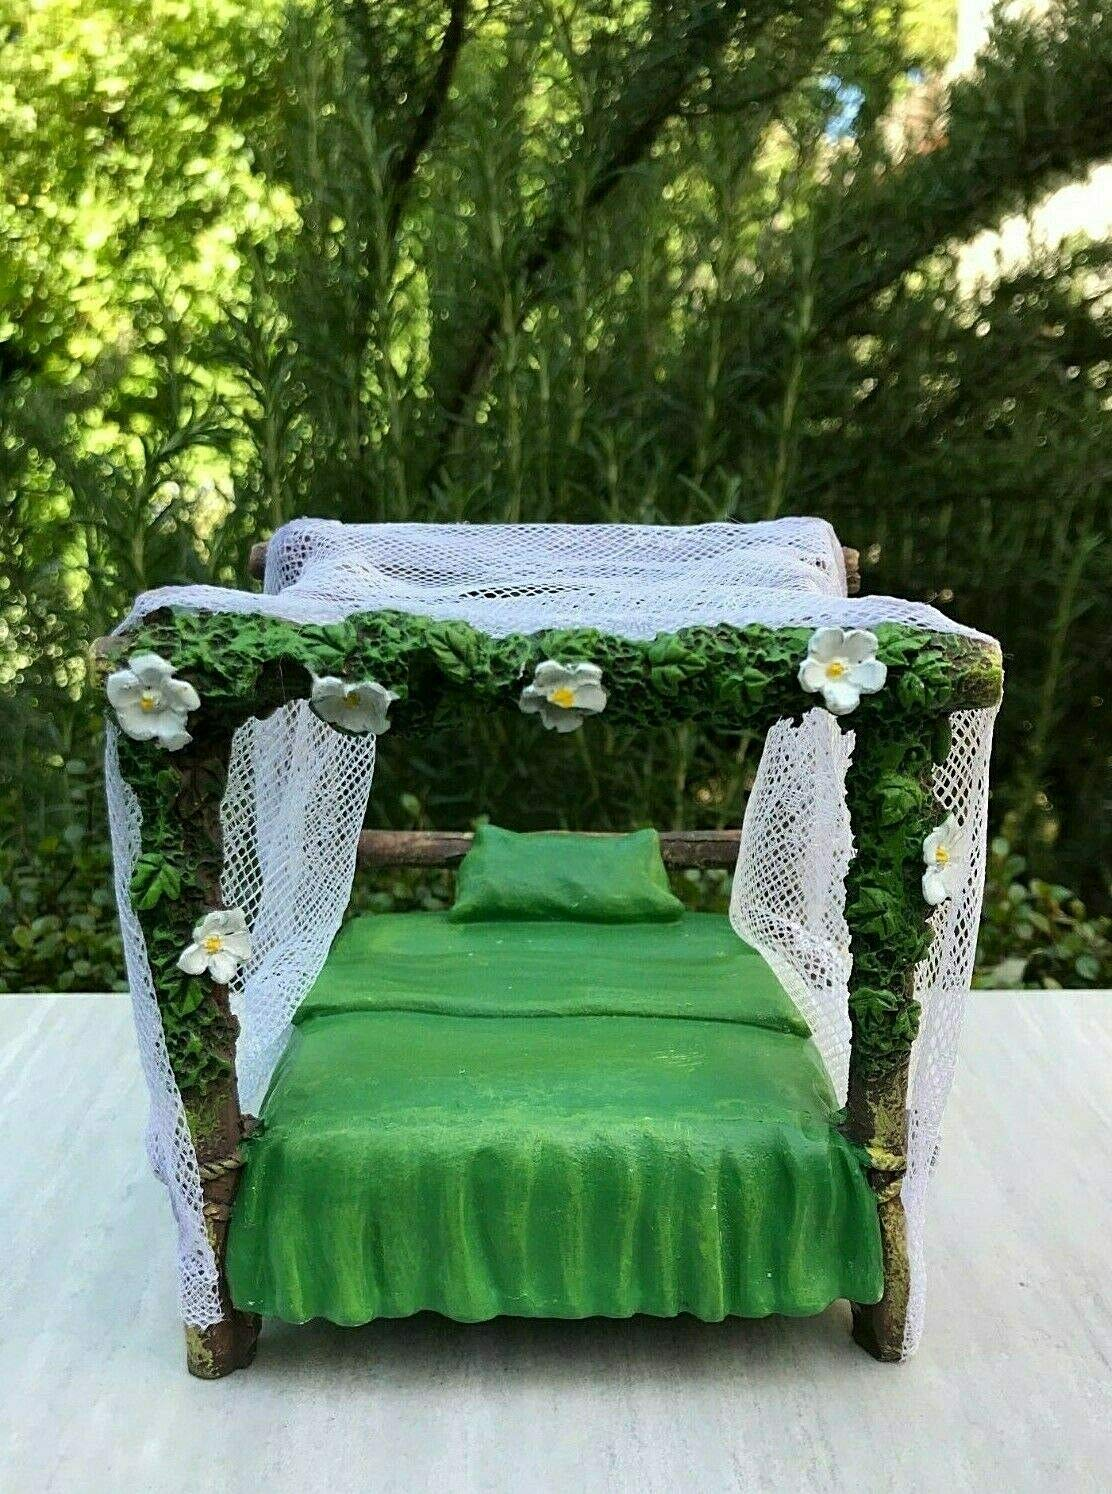 Miniature Dollhouse Fairy Garden Furniture ~ Large Green Canopy Bed with Tulle